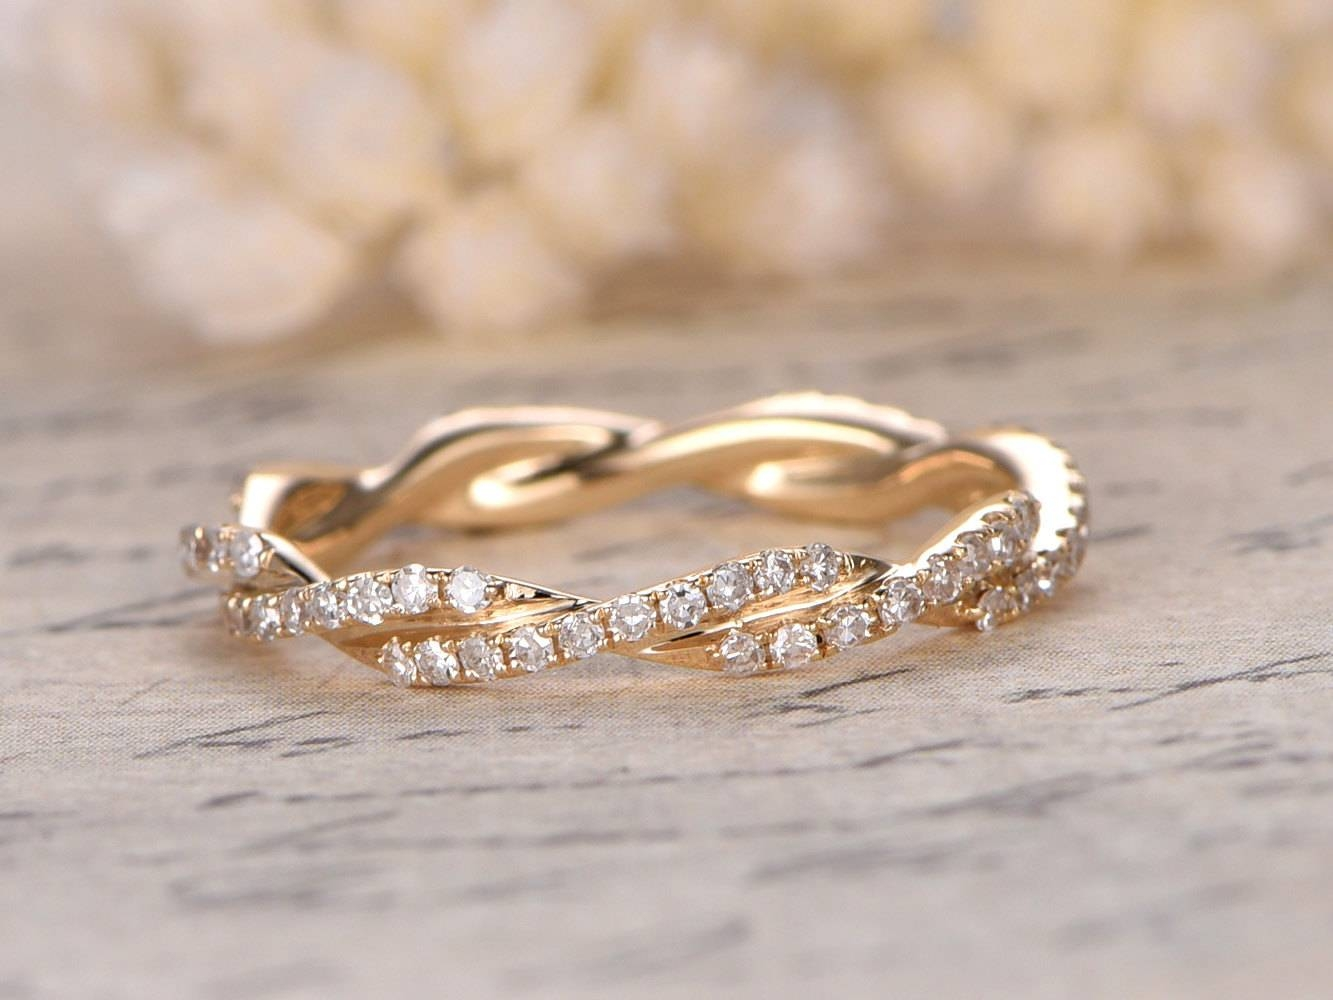 Diamond Wedding Bandfull Eternity Anniversary Ring 14k Regarding Most Recent Infinity Anniversary Rings (View 4 of 25)